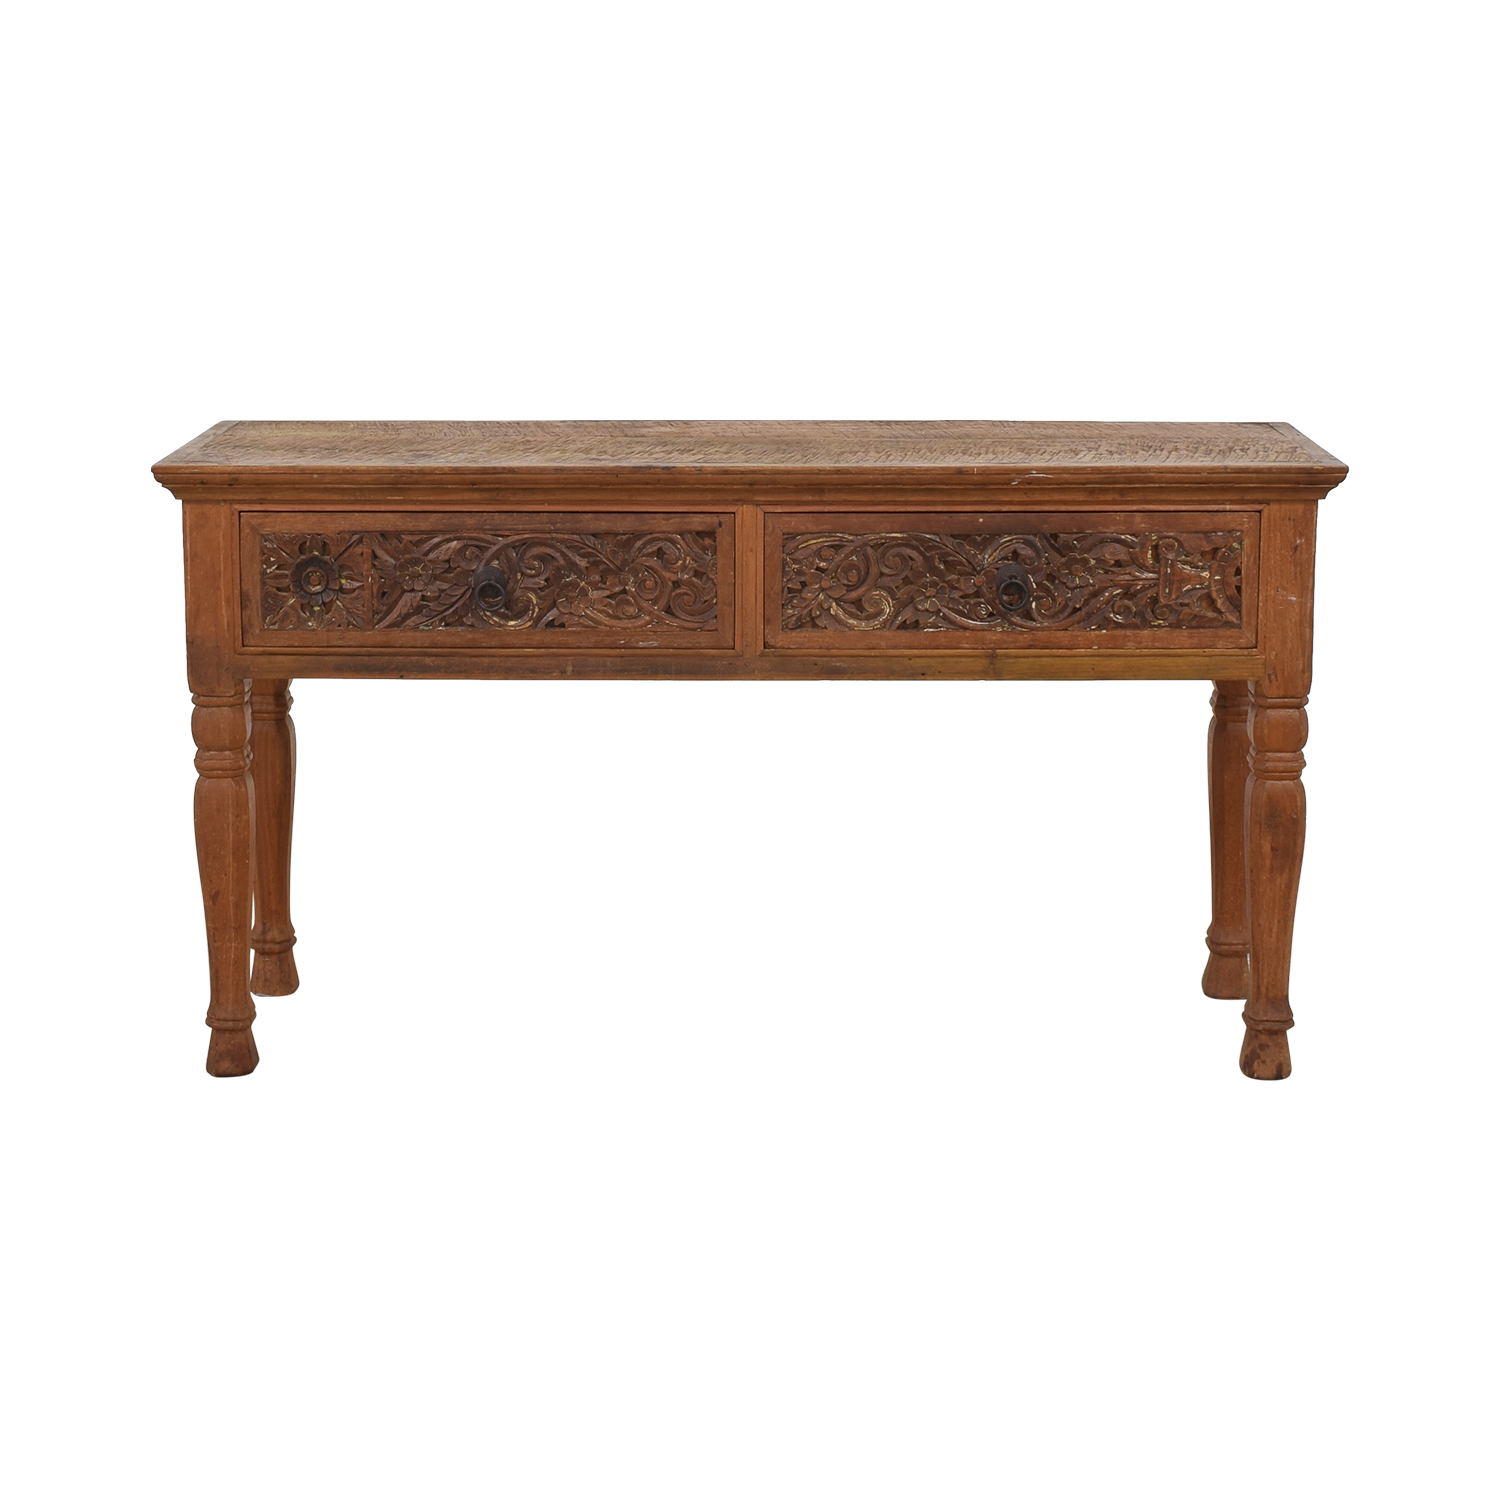 ABC Carpet & Home Carved Indonesian Style Console Table ABC Carpet & Home